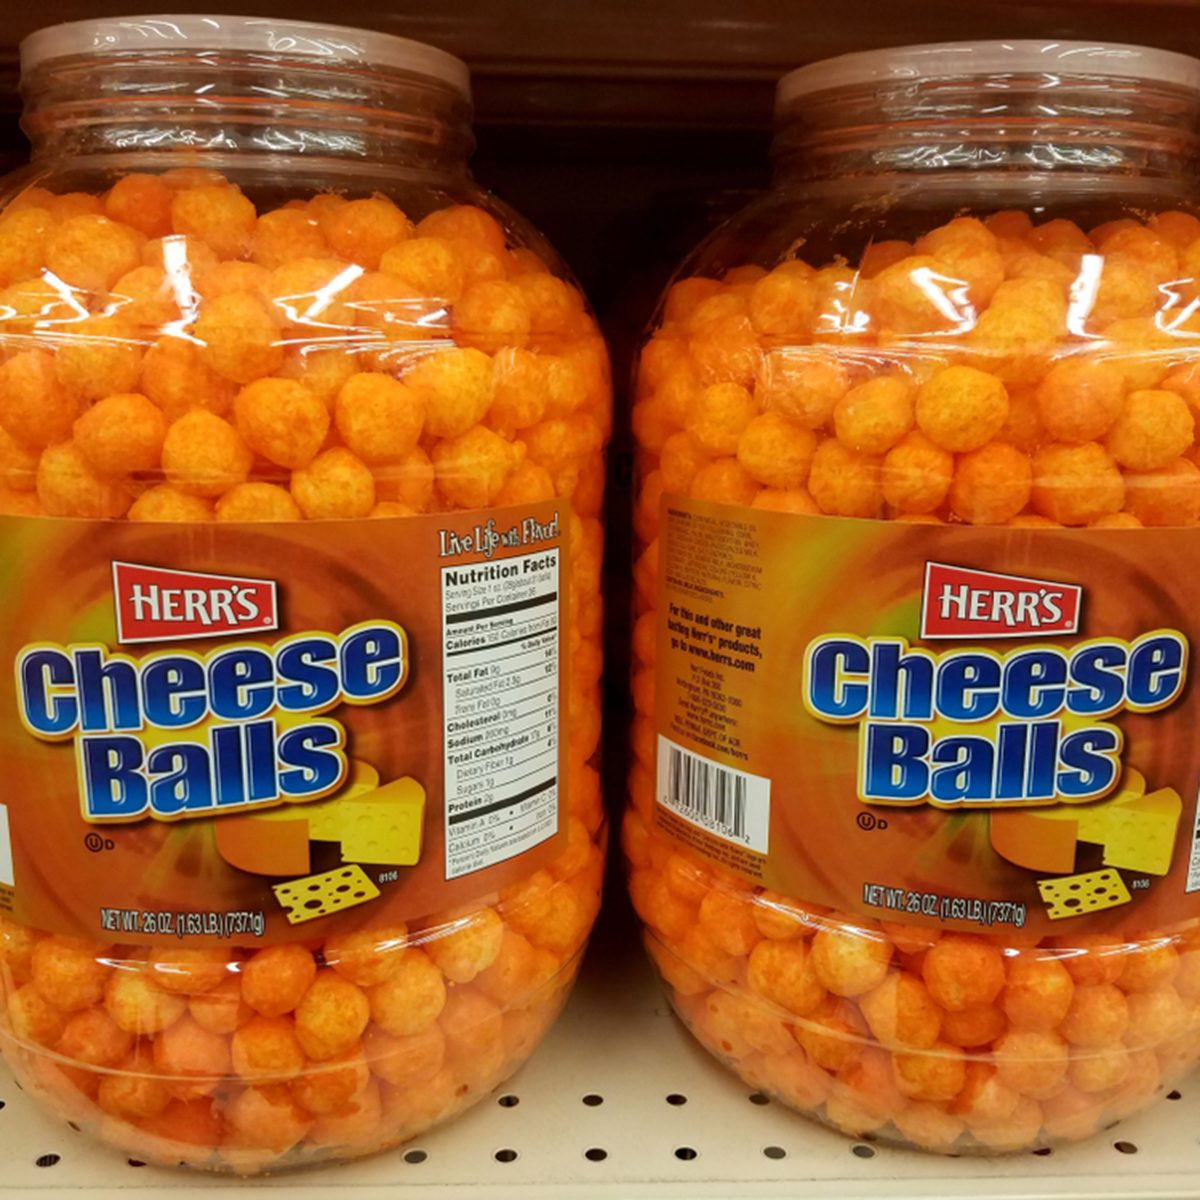 Cheese Balls by Herr's for sale on the shelves